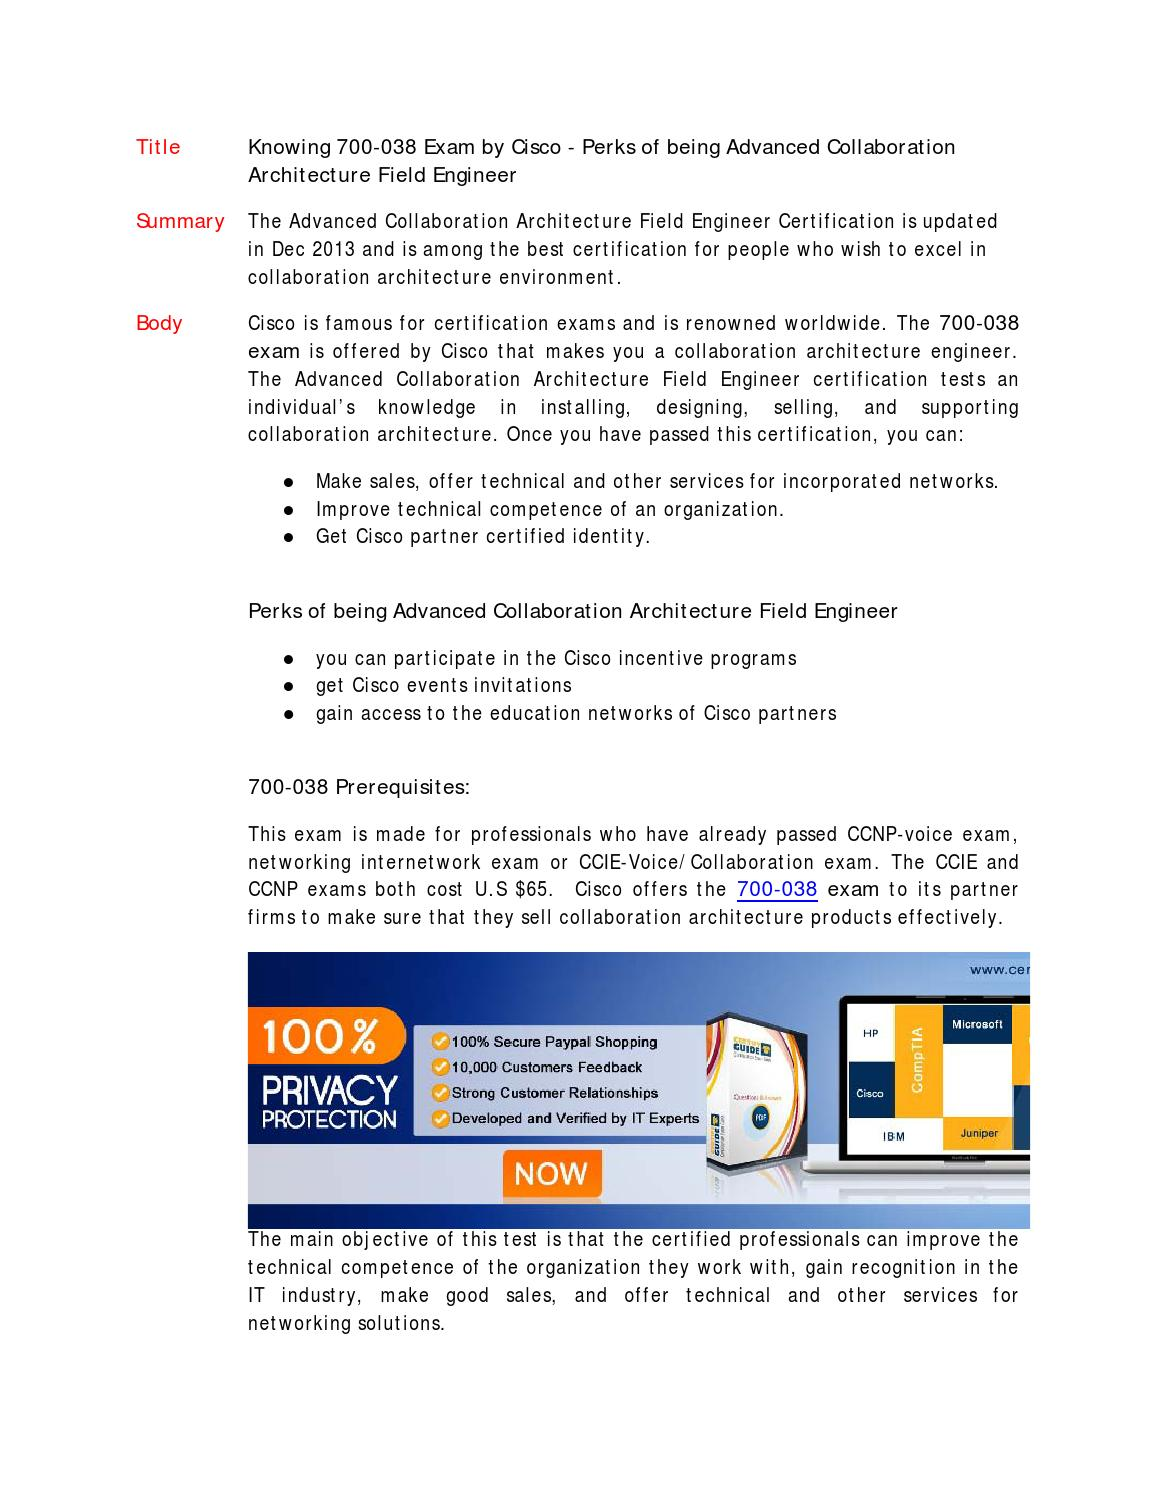 Collaborative Teaching Degree ~ Advanced collaboration architecture field engineer